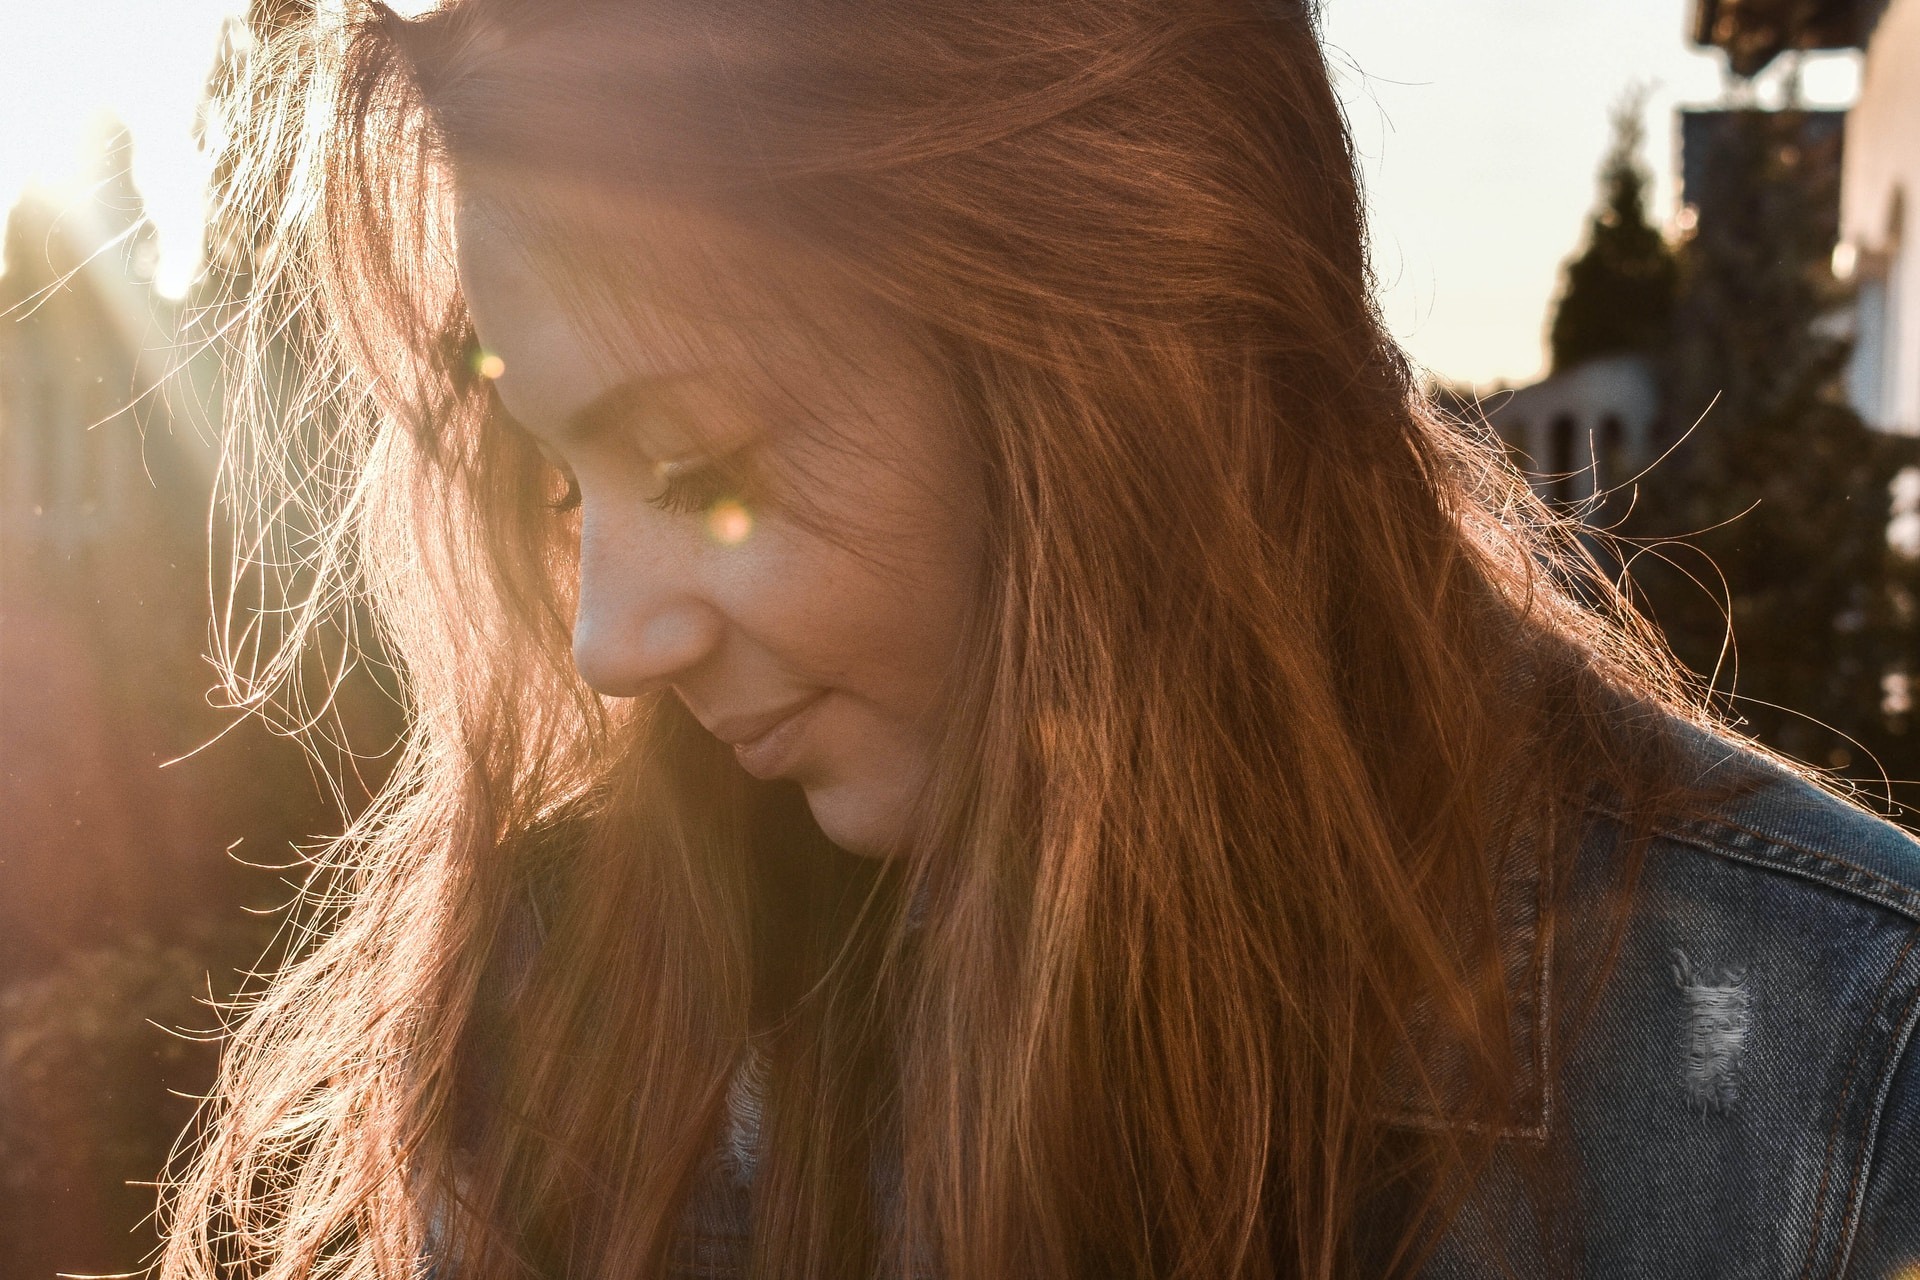 woman wearing blue denim jacket looking on her right side in shallow focus photography